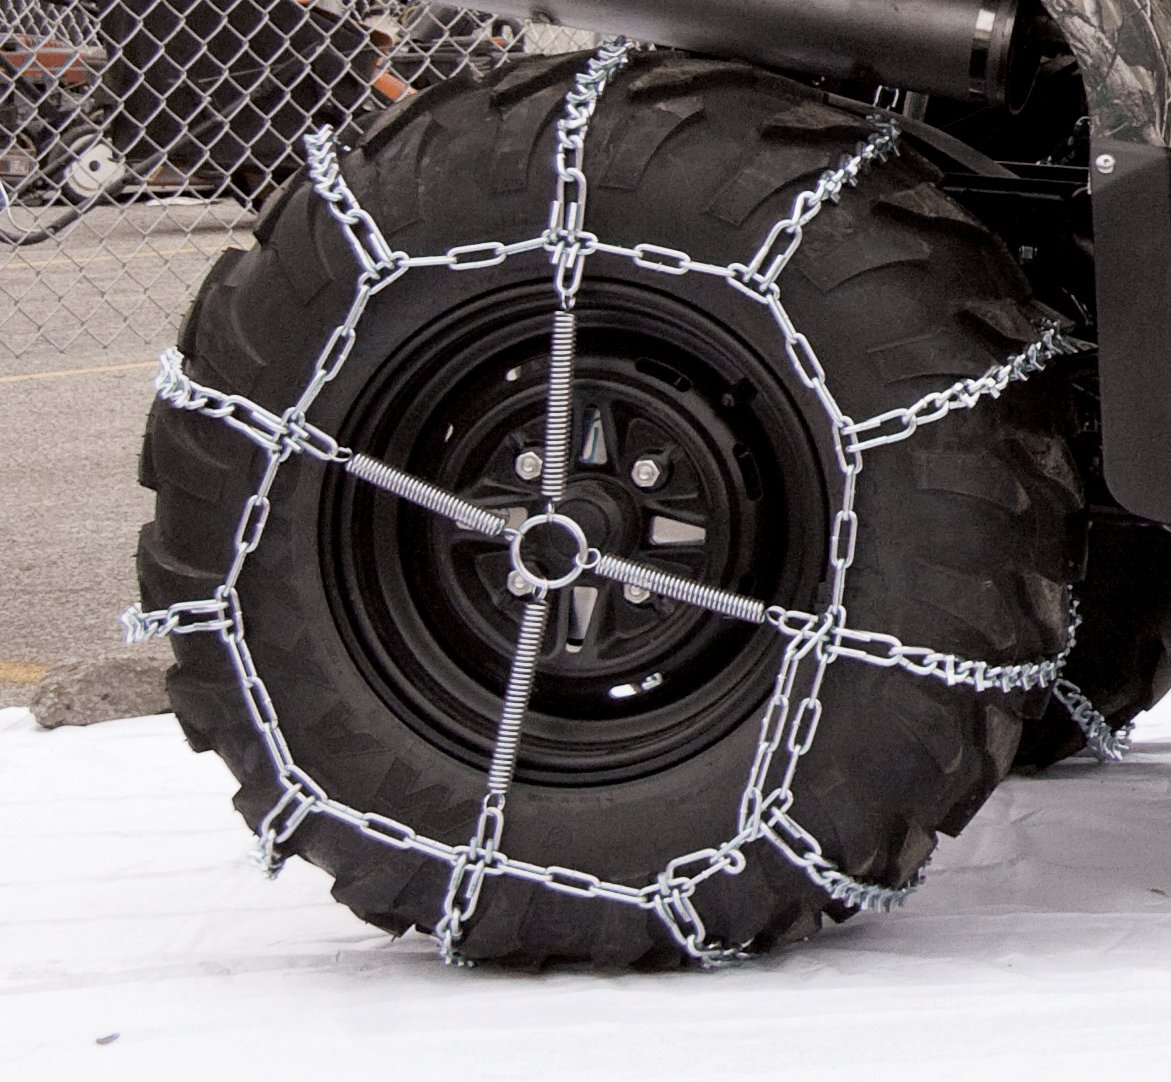 Security Chain Company 1064756 ATV Trac V-Bar Tire Traction Chain by Security Chain (Image #2)